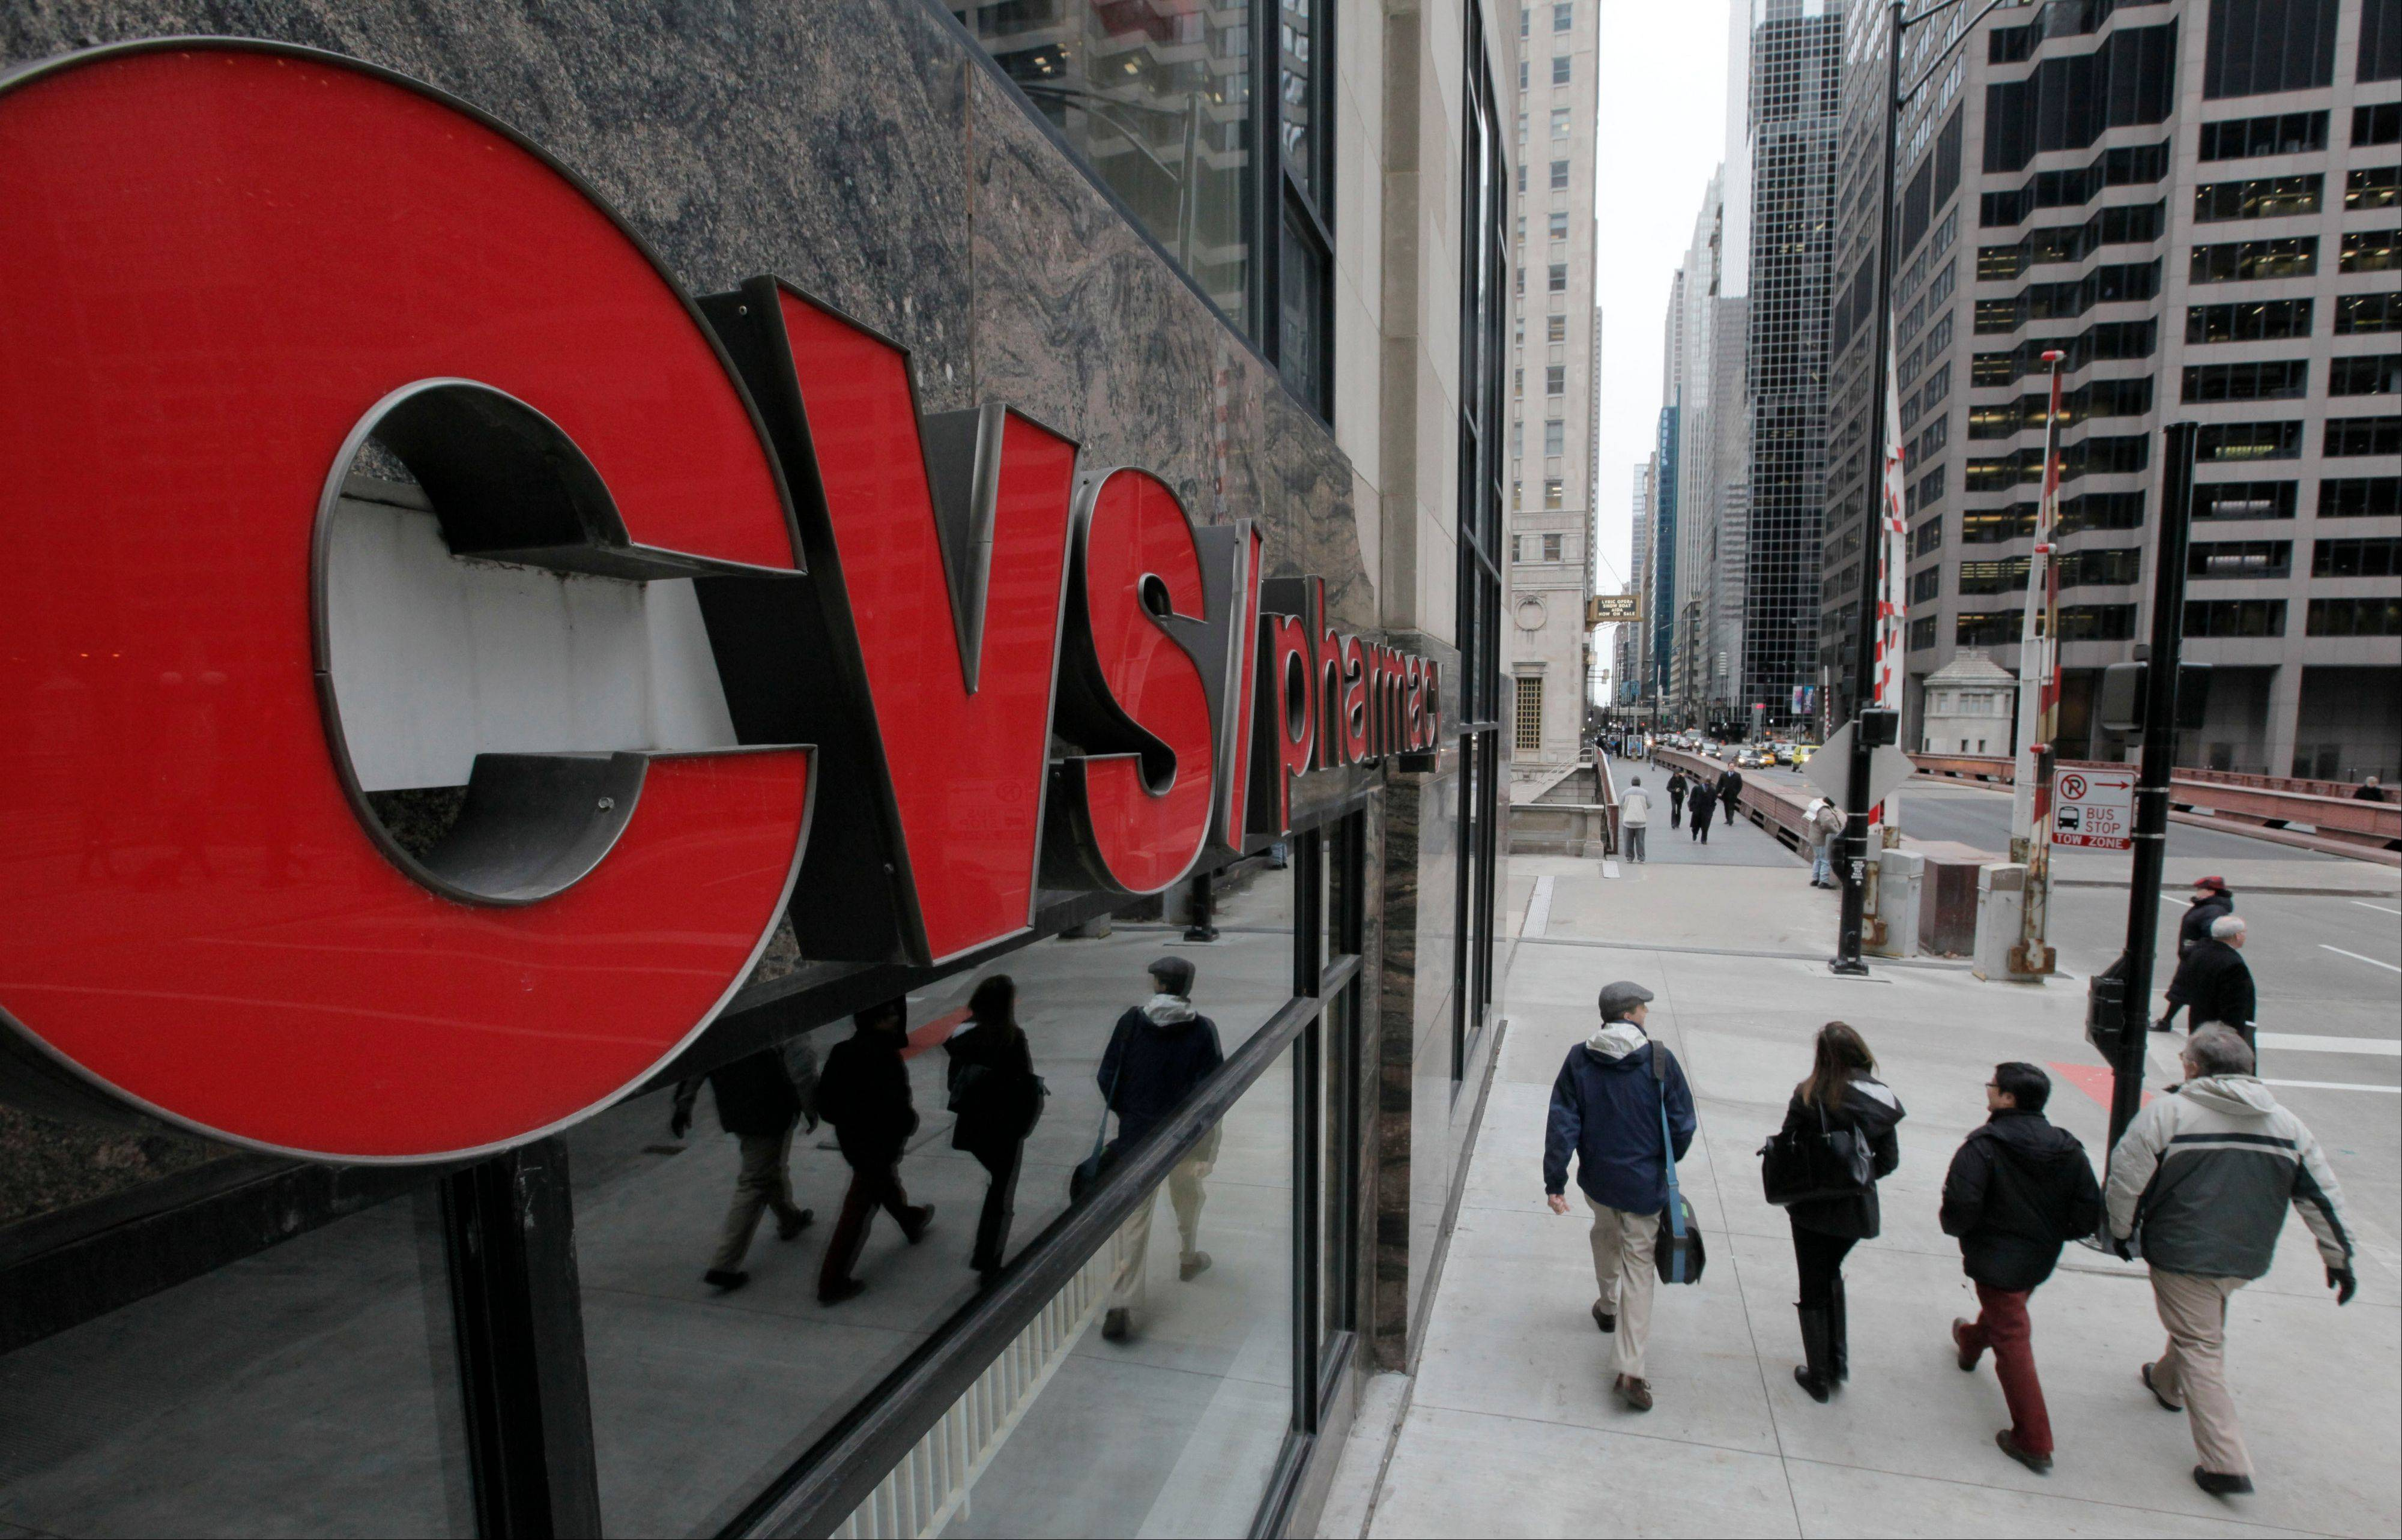 CVS Caremark Corp. with local operations in Northbrook, Lincolnshire and Bannonckburn, says first-quarter earnings jumped 23 percent and topped analyst expectations, as an influx of generic drugs helped the drugstore operator and pharmacy benefits manager�s profitability.